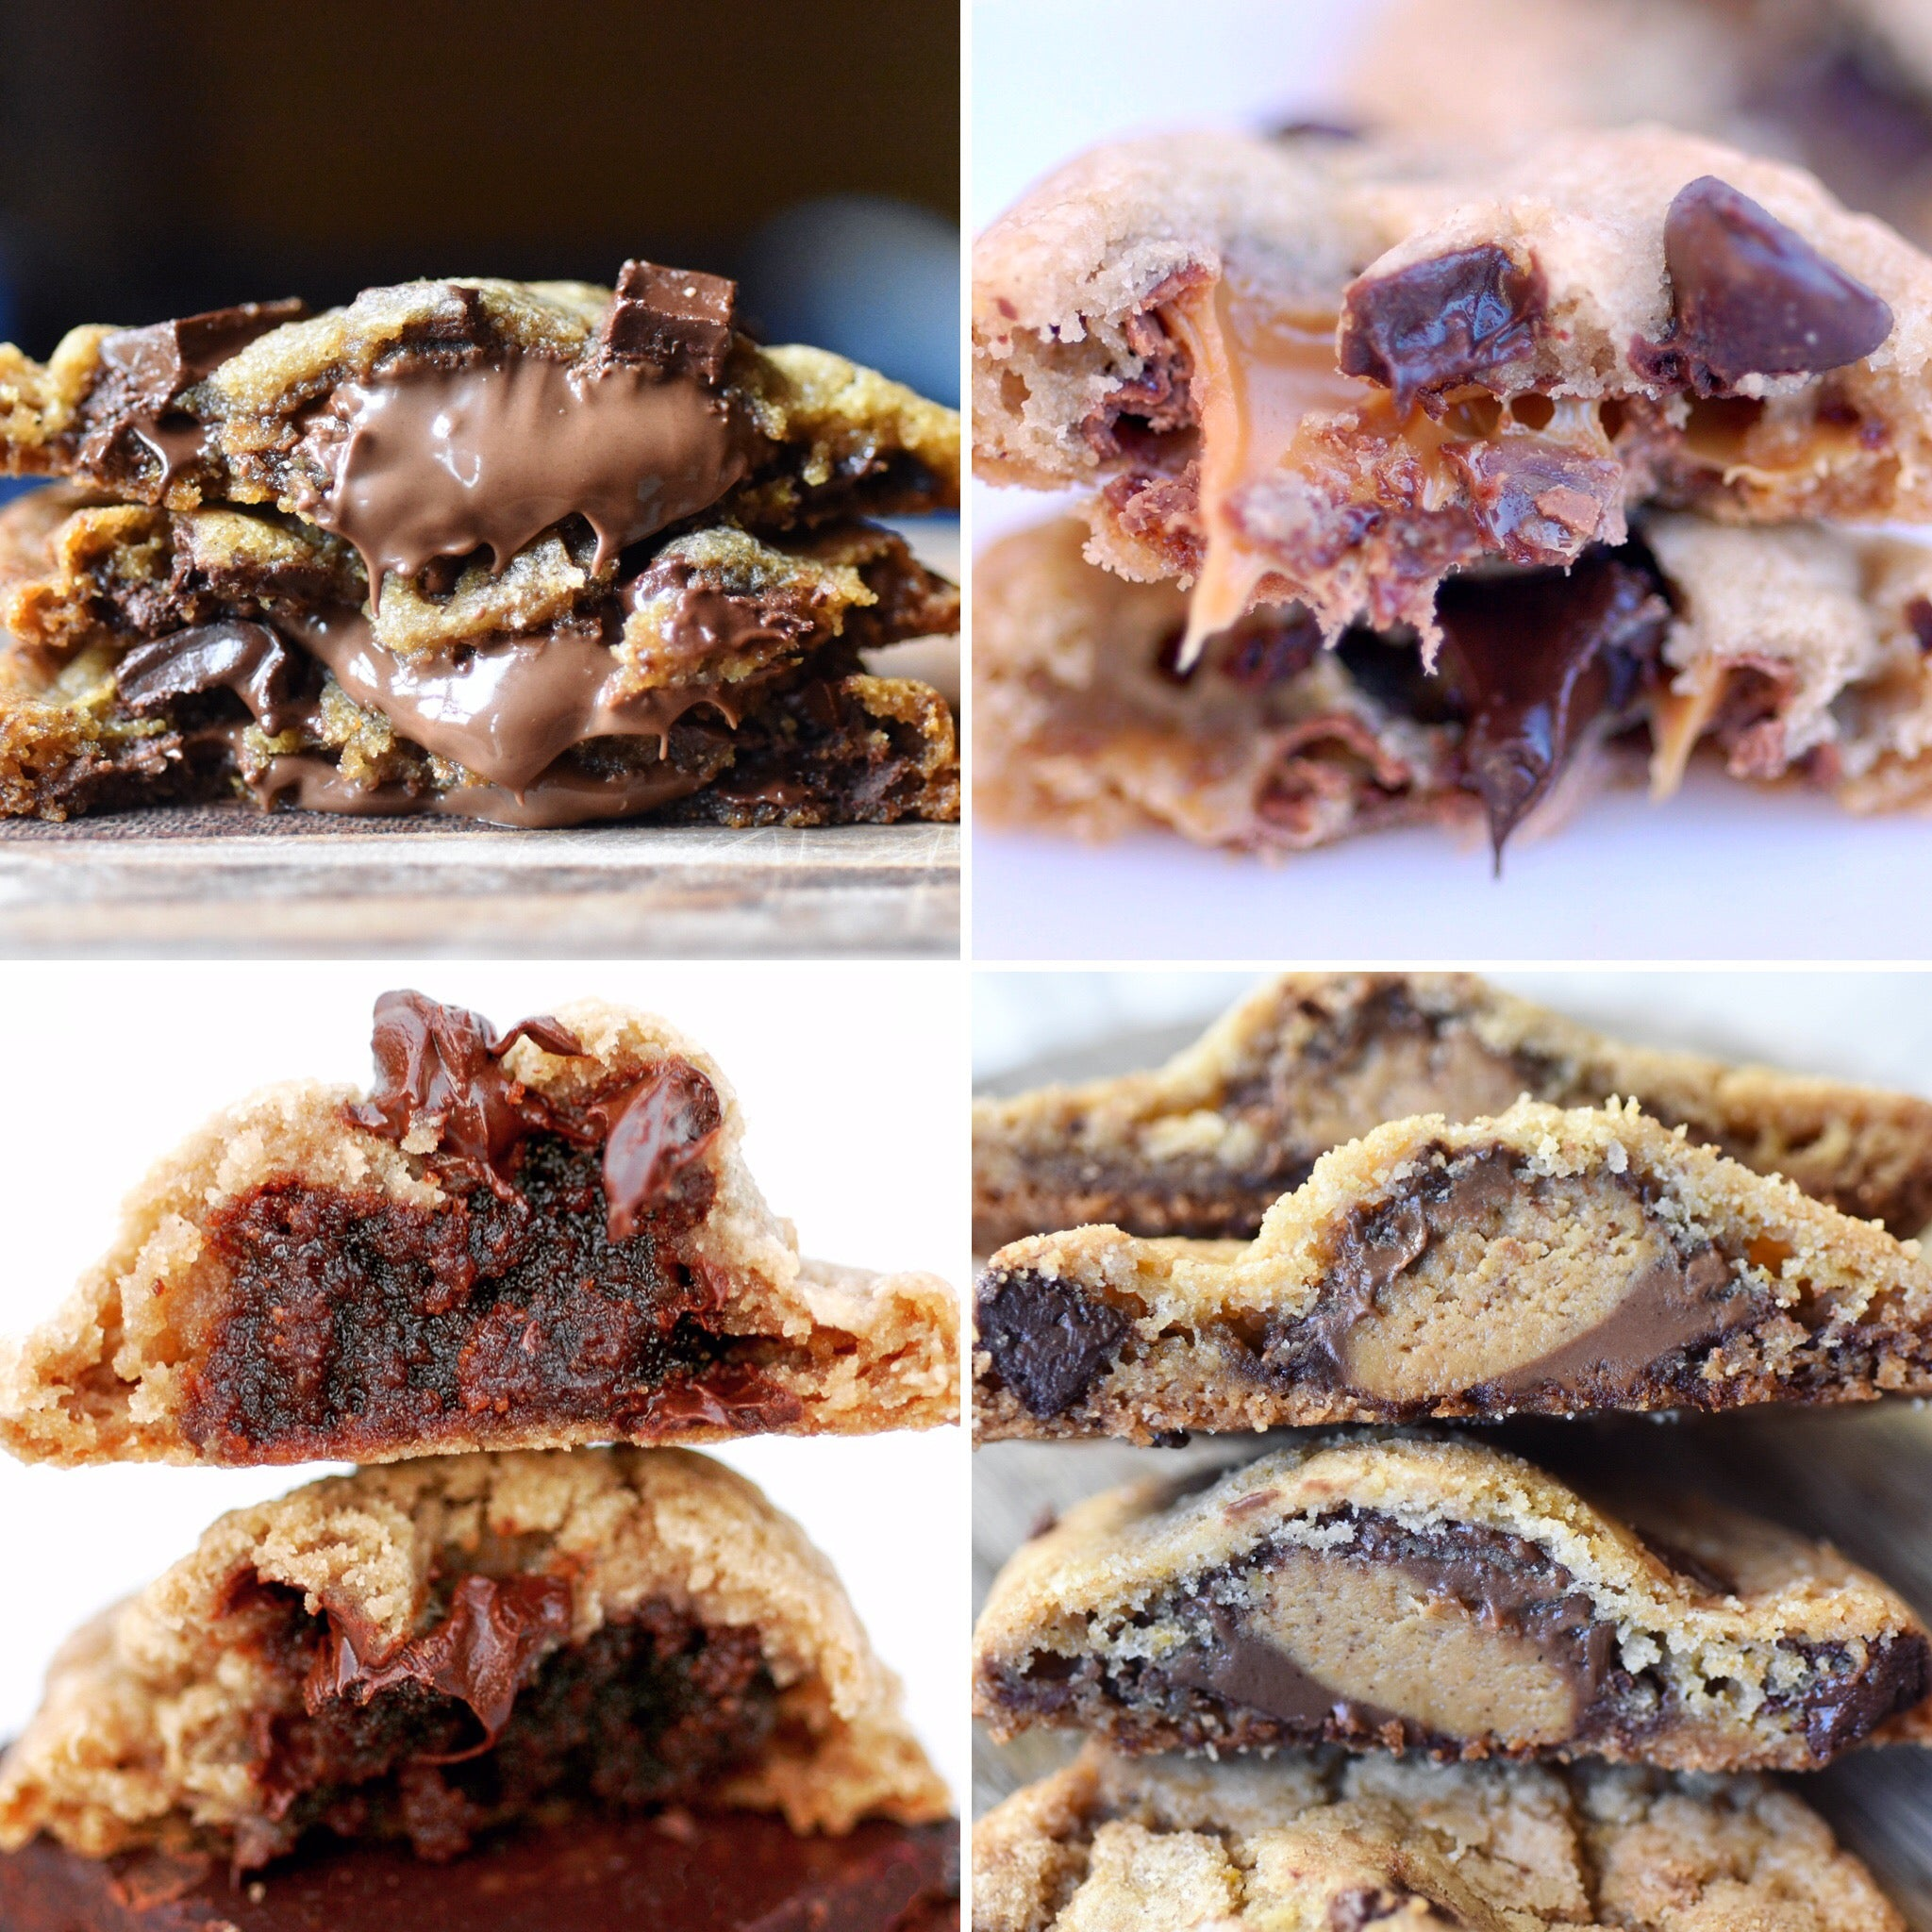 VARIETY PACK {STUFFED COOKIES}